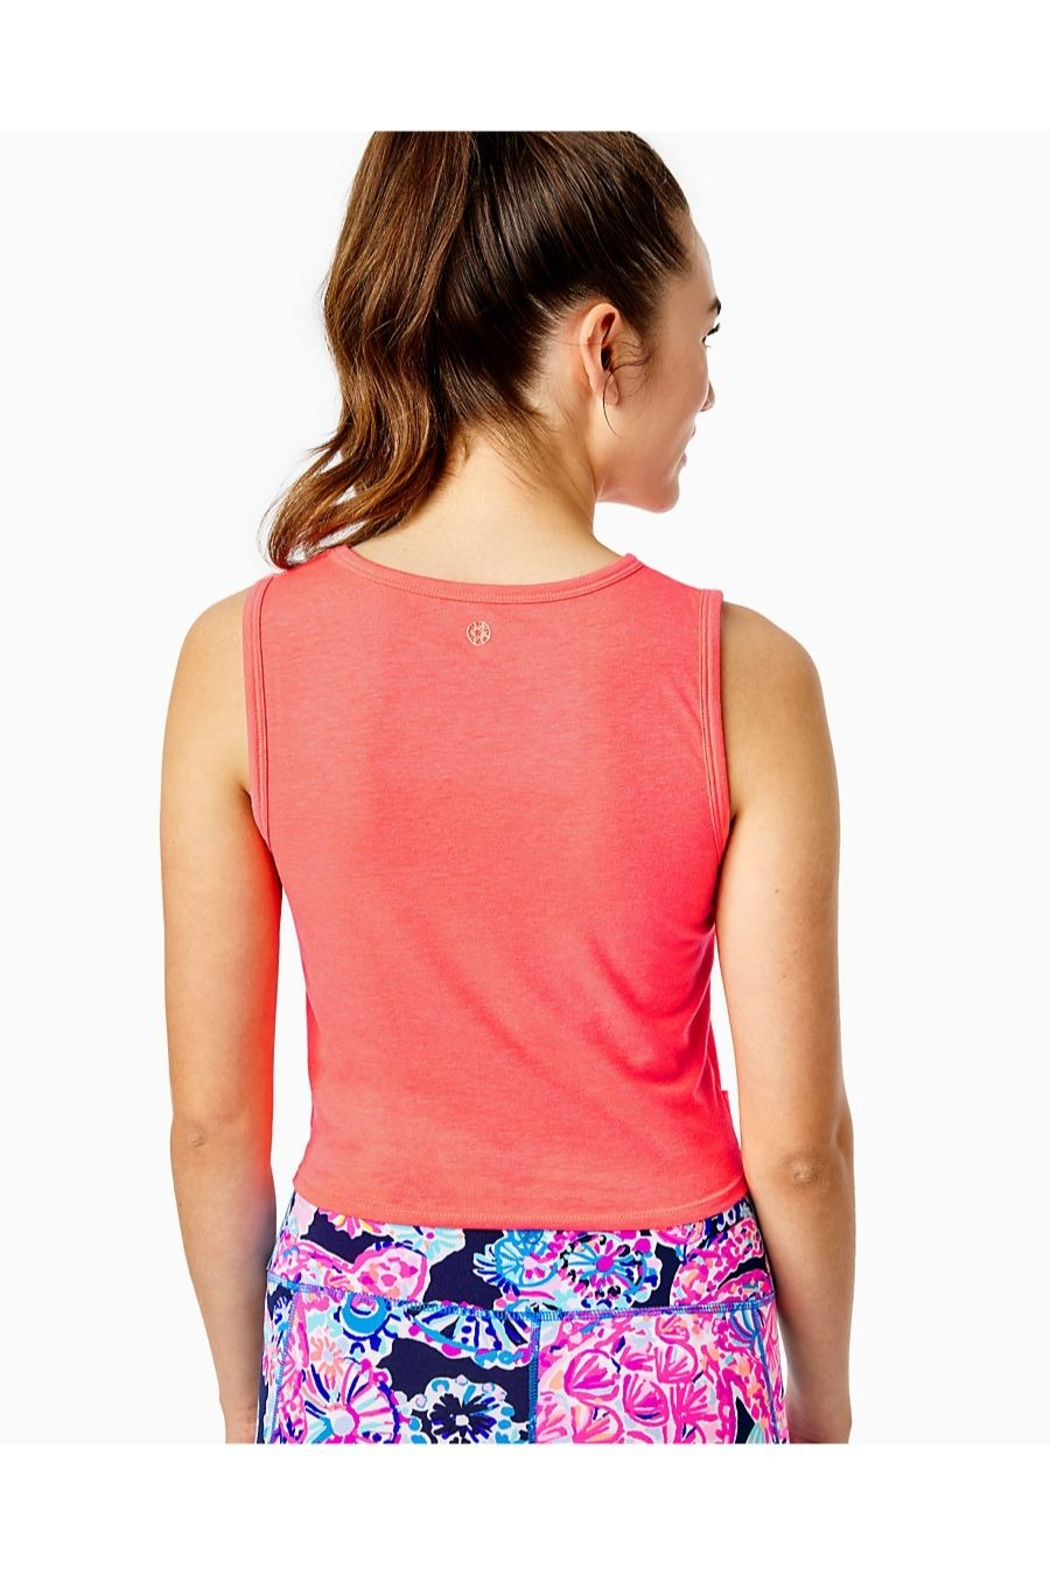 Lilly Pulitzer Luxletic Greer Tank-Top - Front Full Image